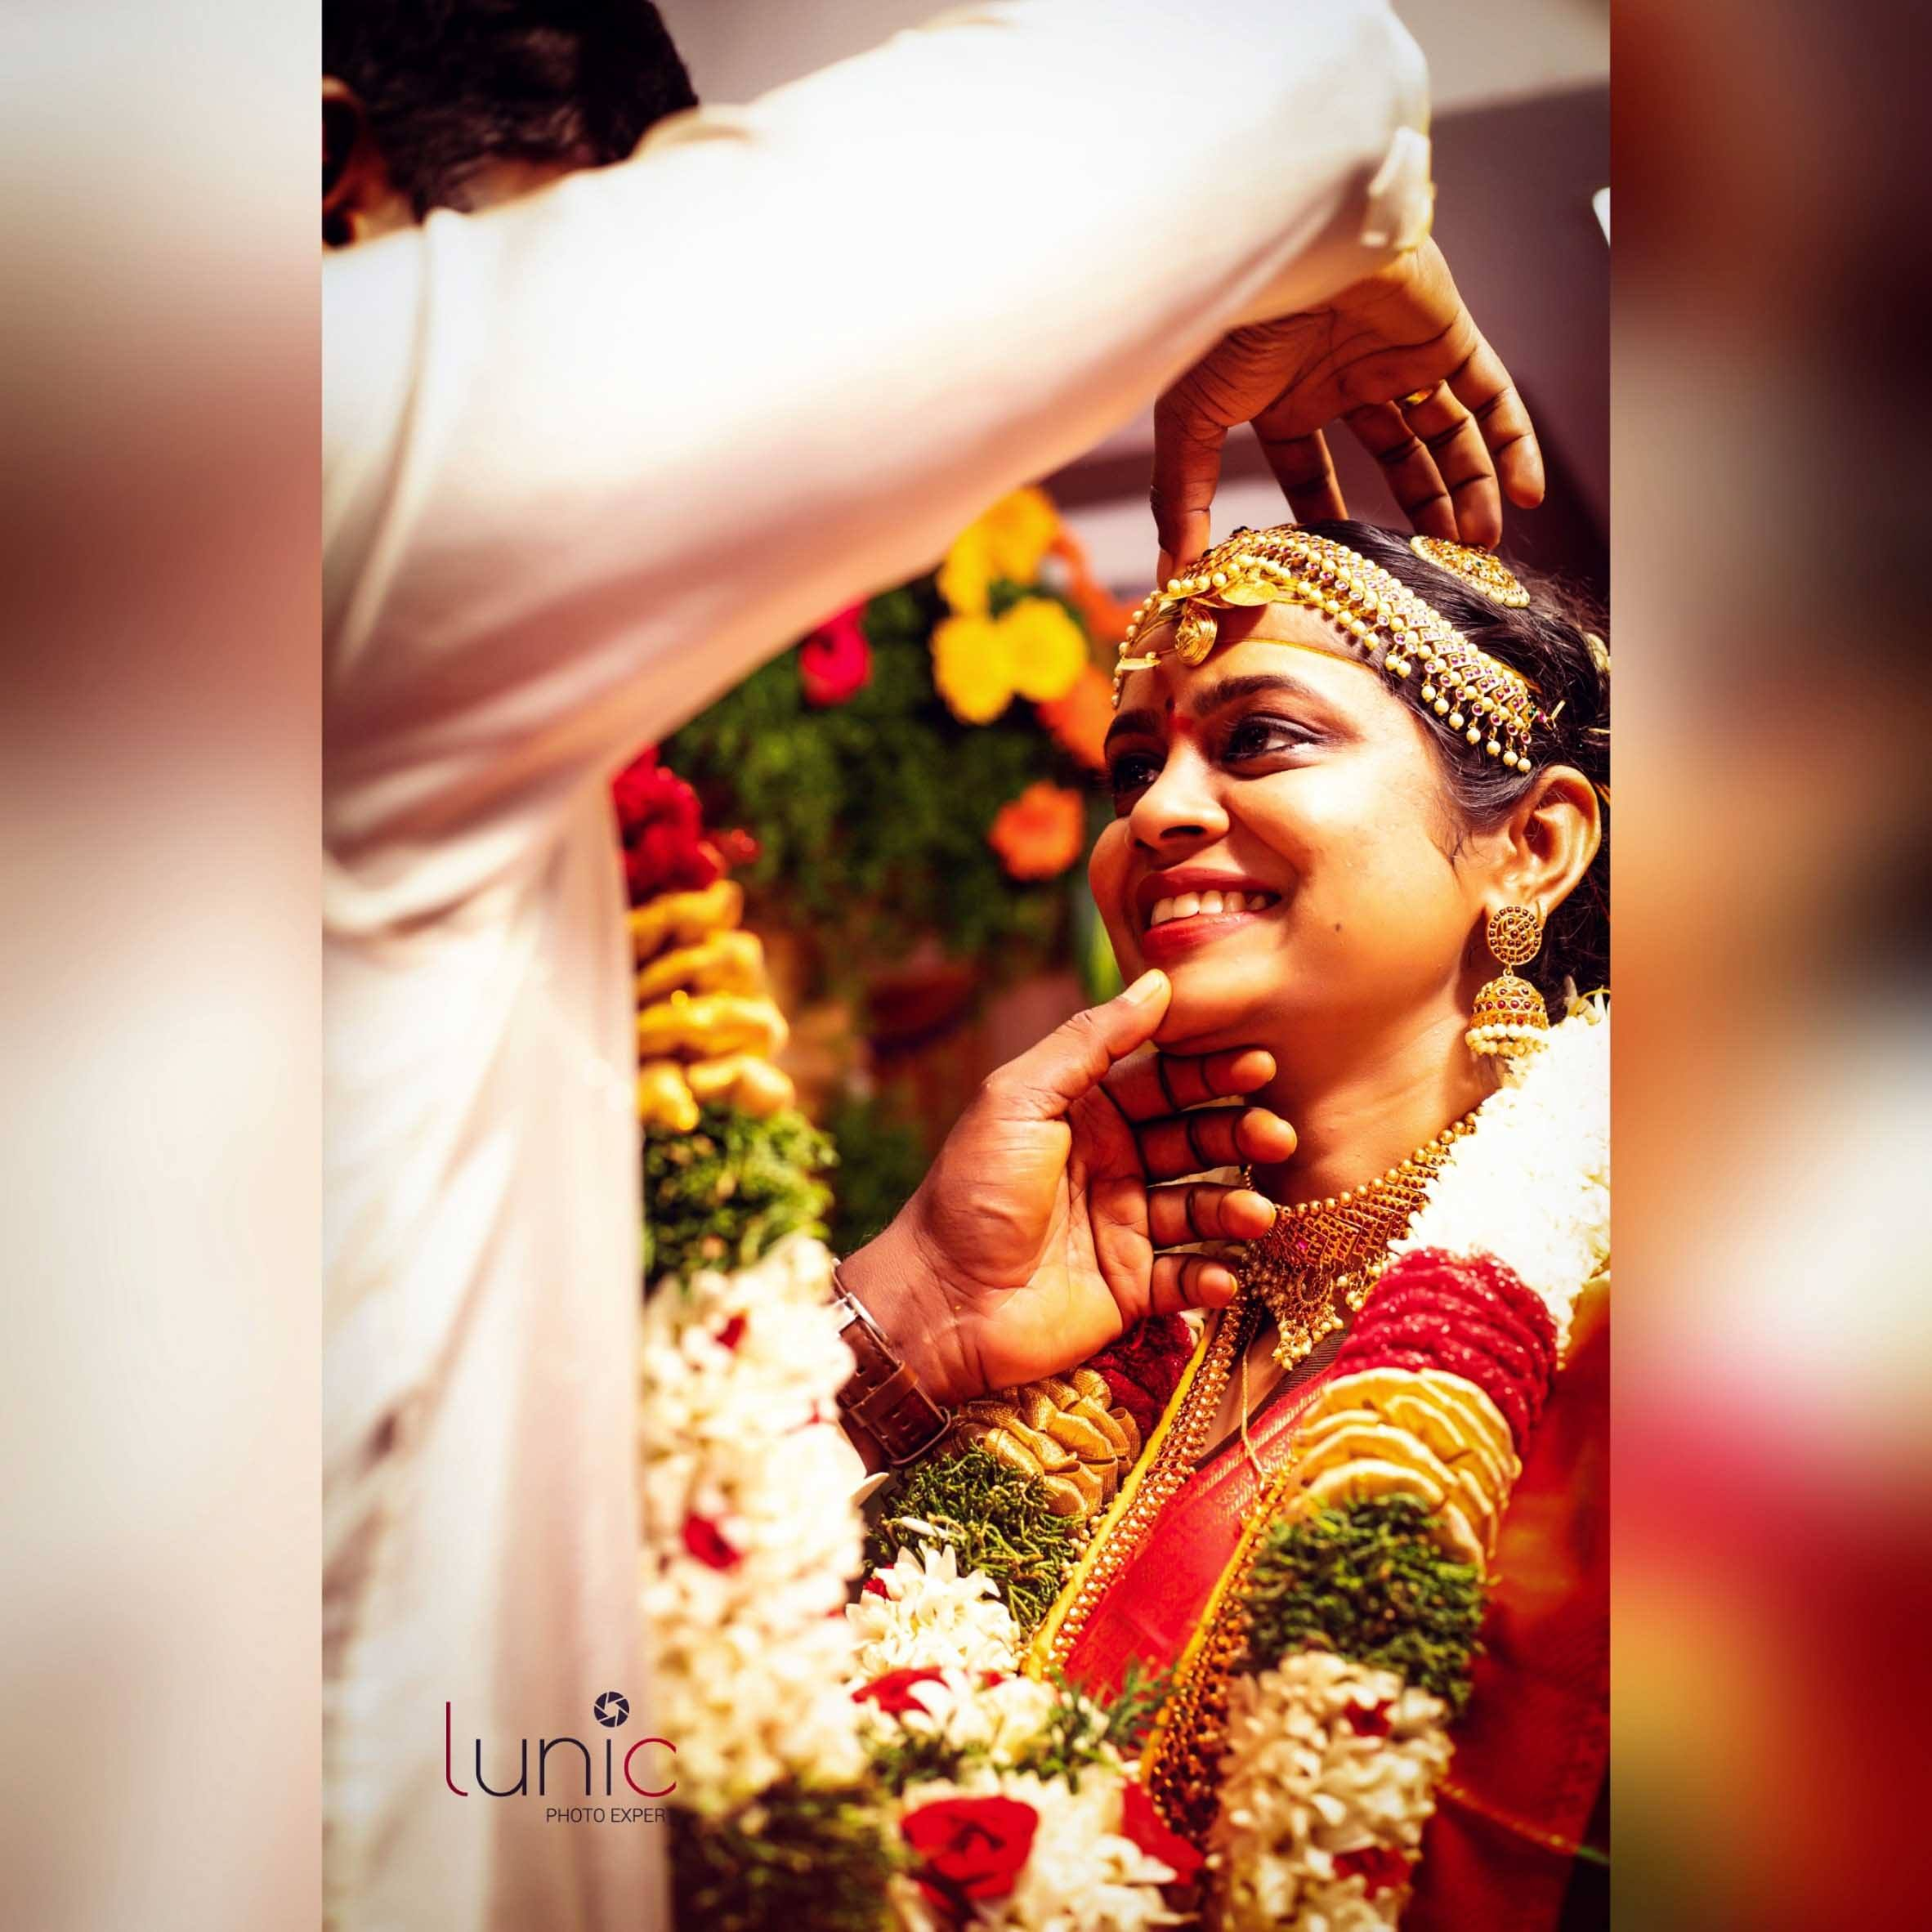 candid moment between  couple during wedding ceremony